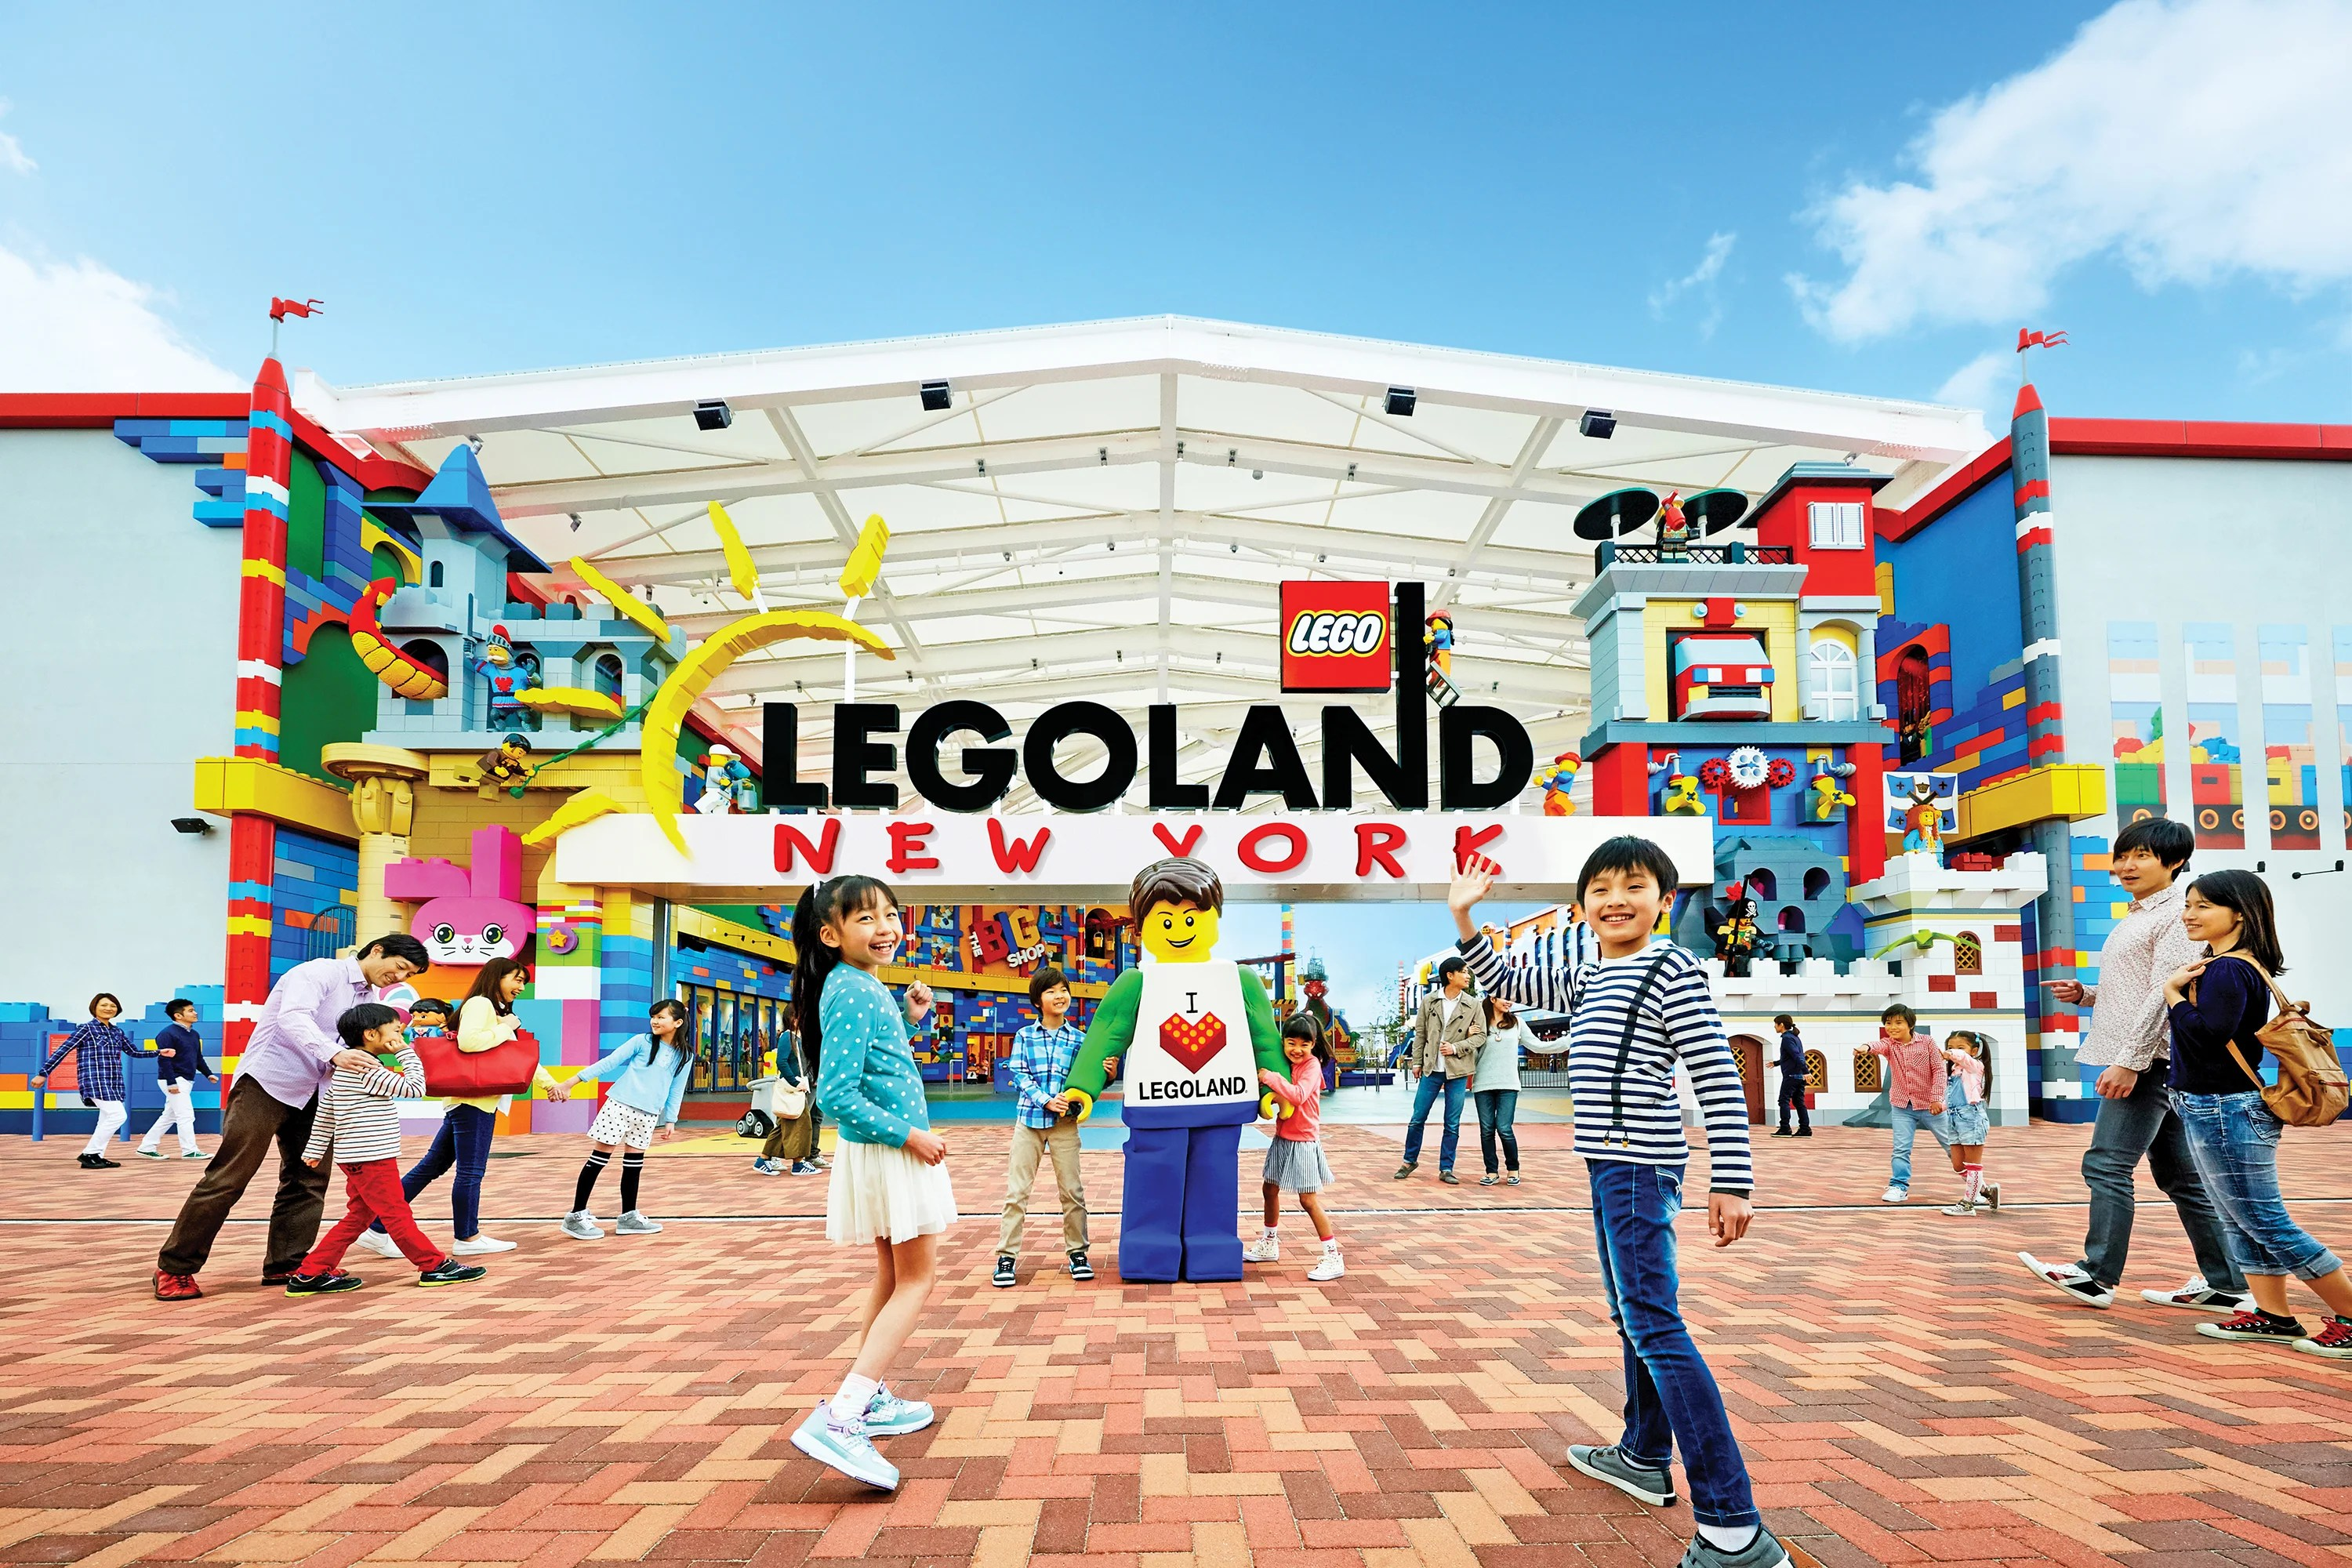 LEGOLAND New York Is Recruiting Kid Reporters, Perks Include Free Annual Passes